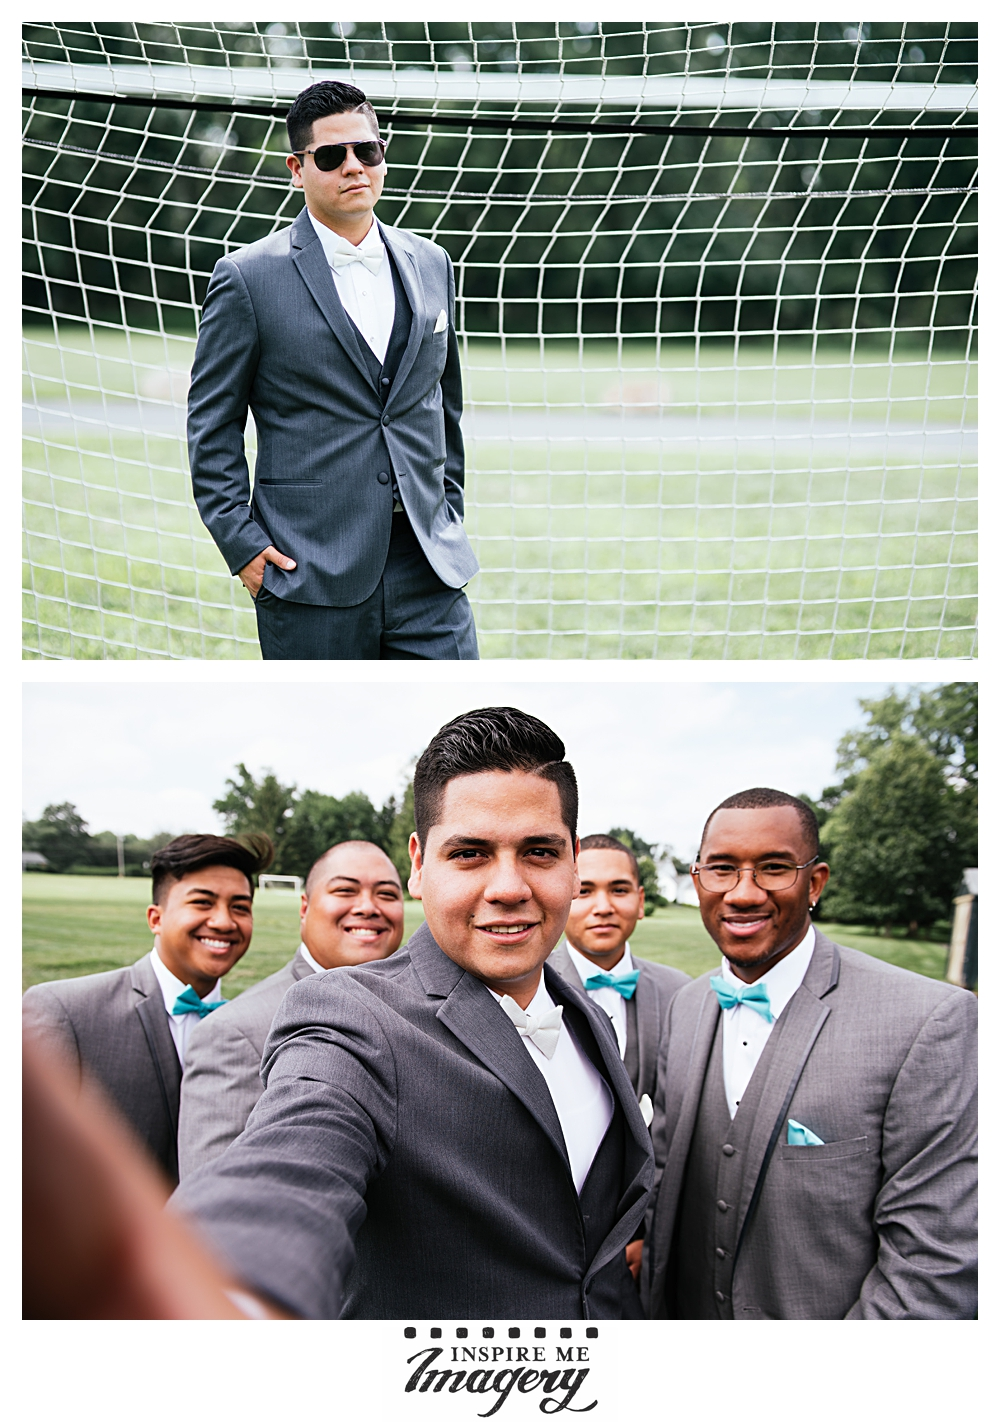 The groom loves soccer, so of course we had to hop in front of the net for a portrait. The second photo here? Professional grade selfie.